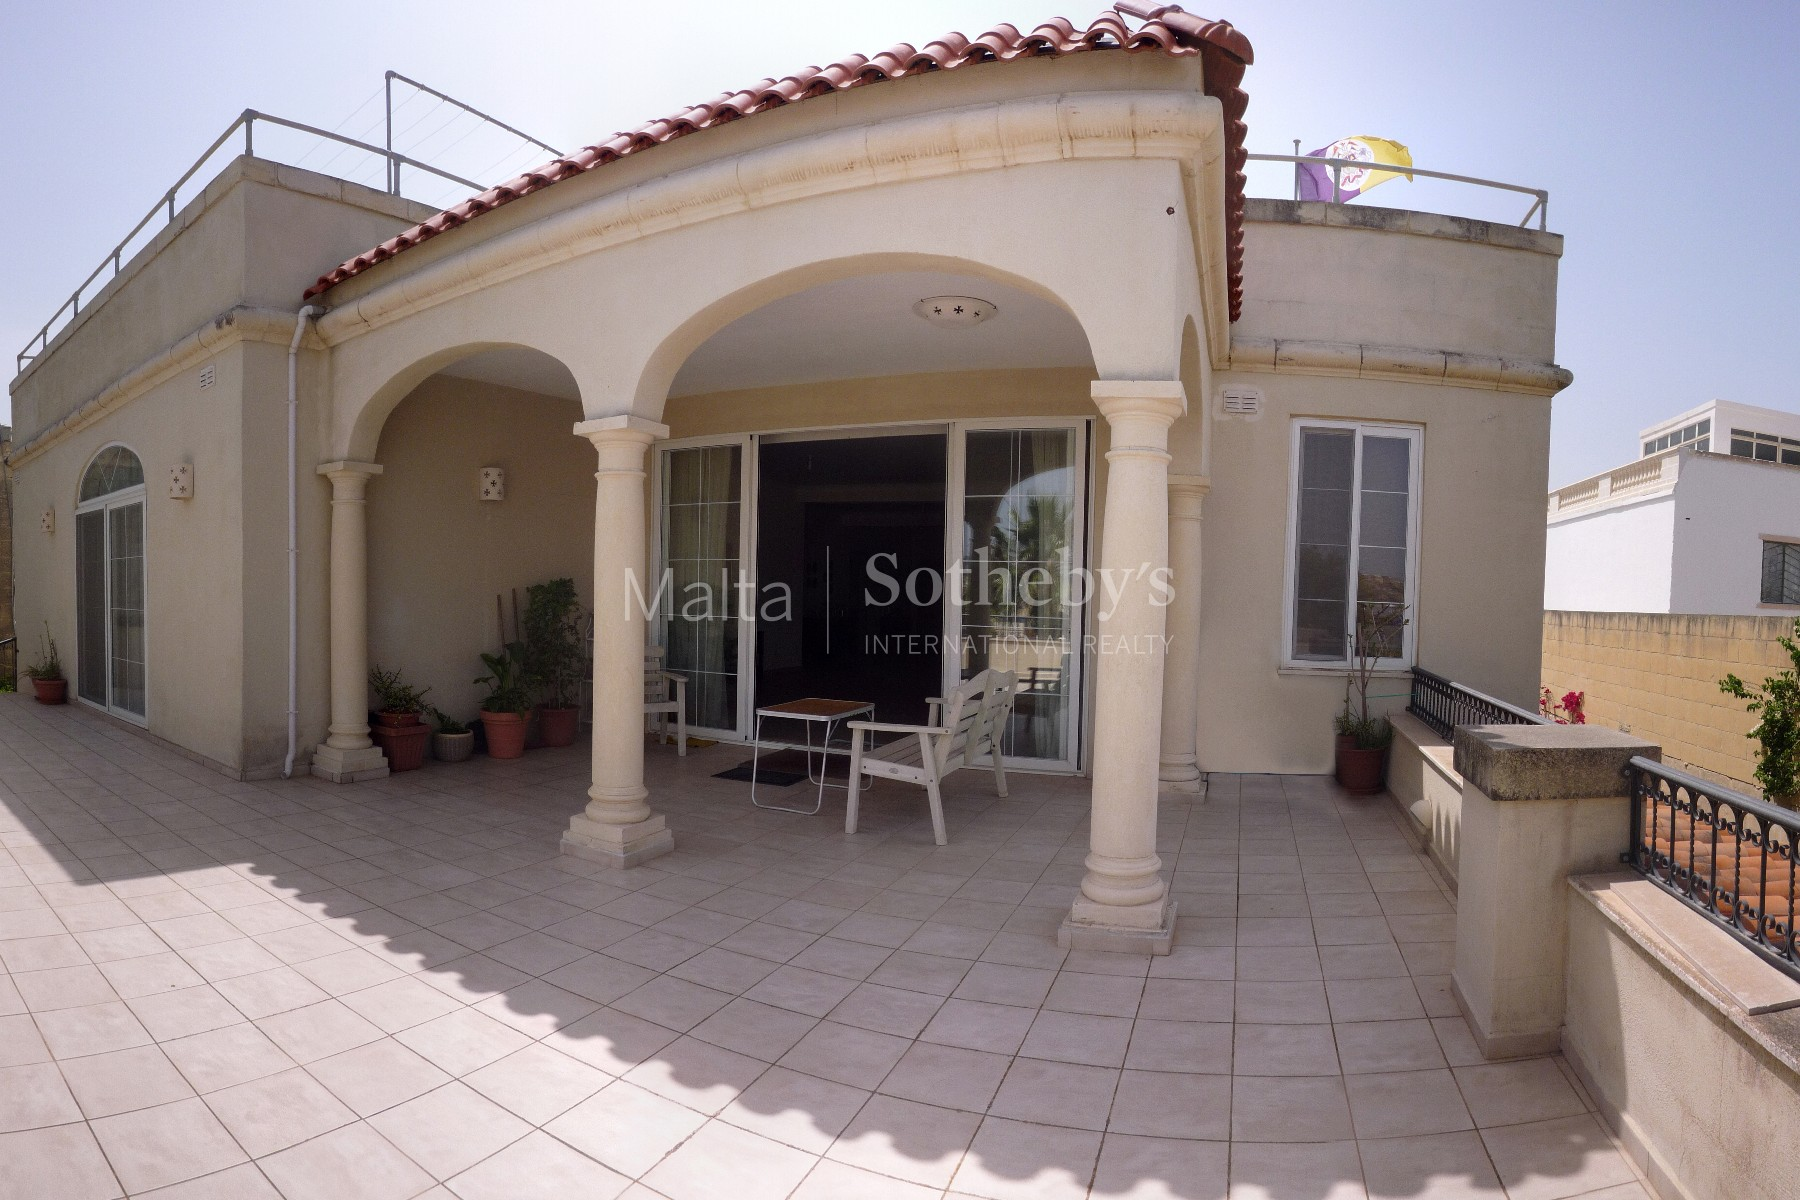 Additional photo for property listing at Semi Detached Villa Balzan Balzan, Malta Malta